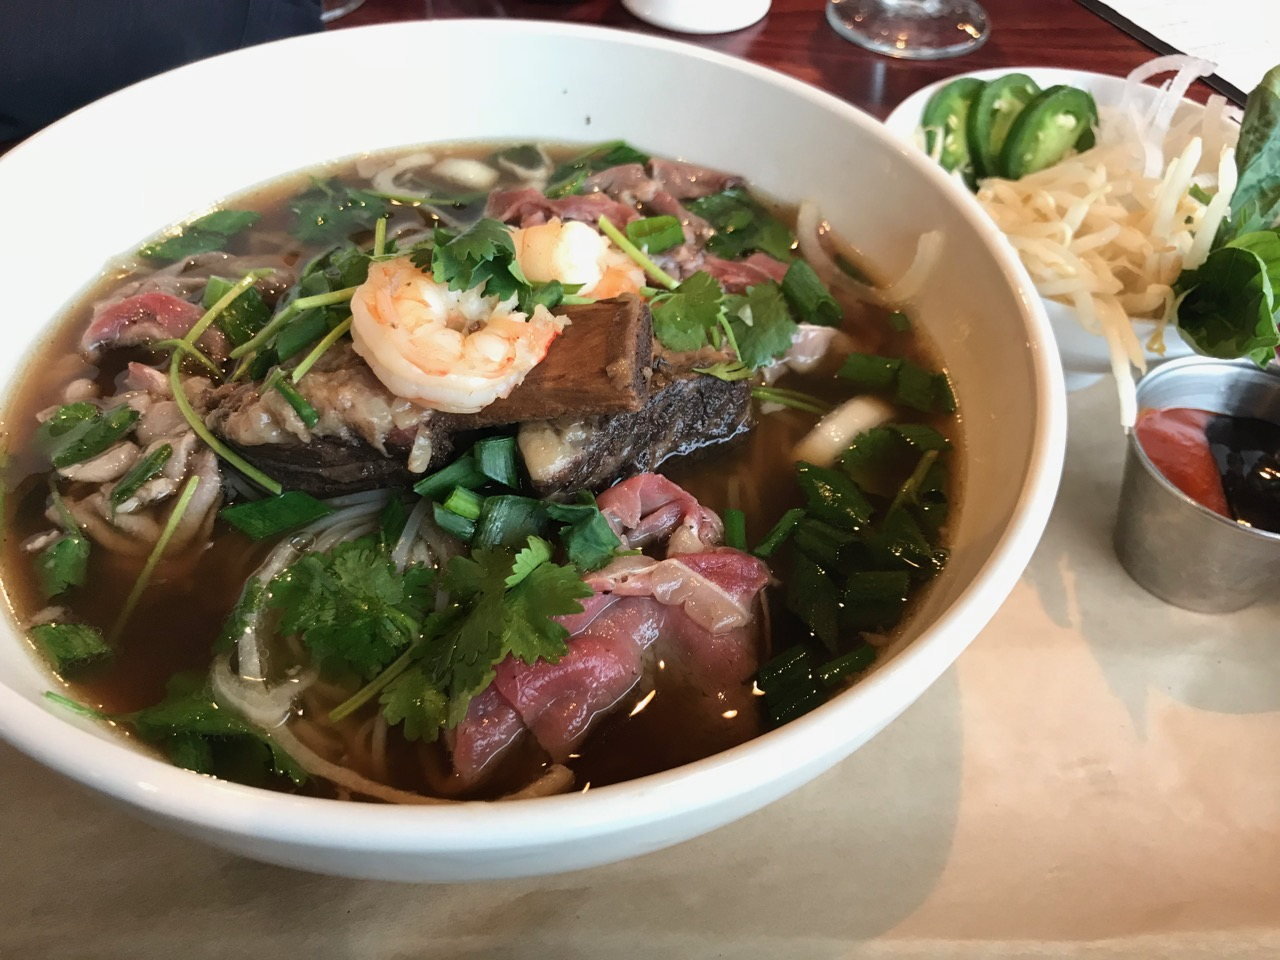 A Second Round of Pho at Edge Steakhouse in Kennewick – March 15 2018